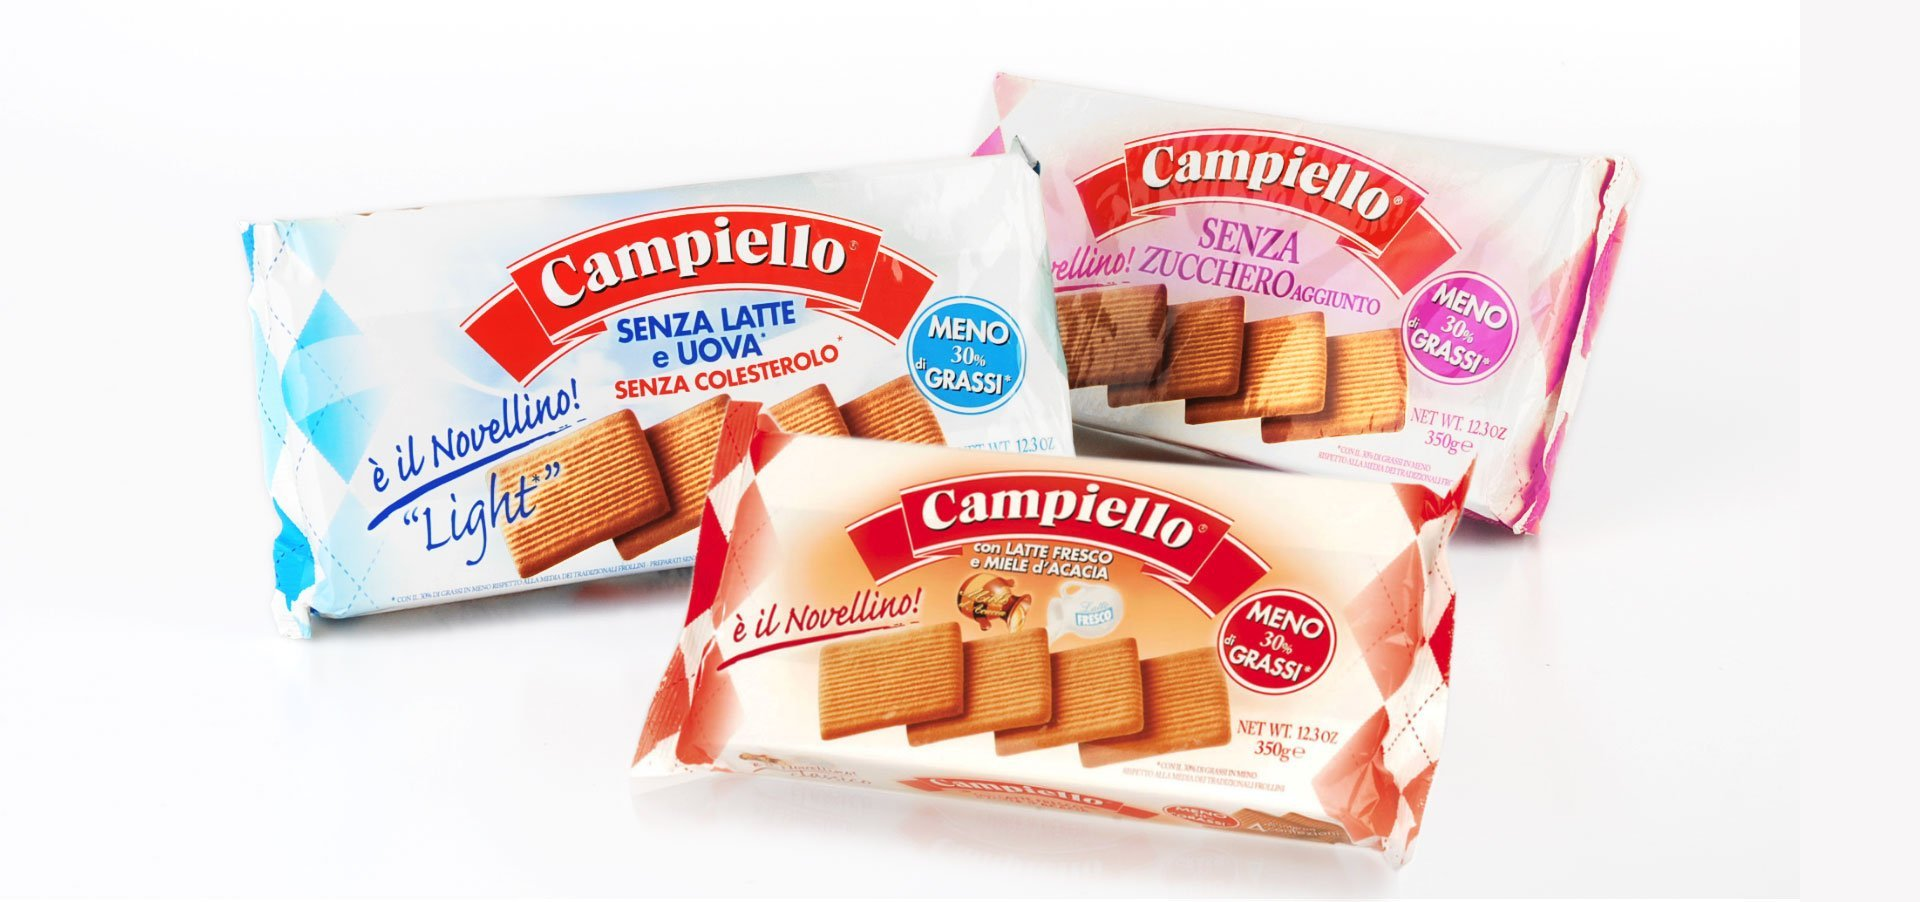 Packaging-campiello-il-novellino